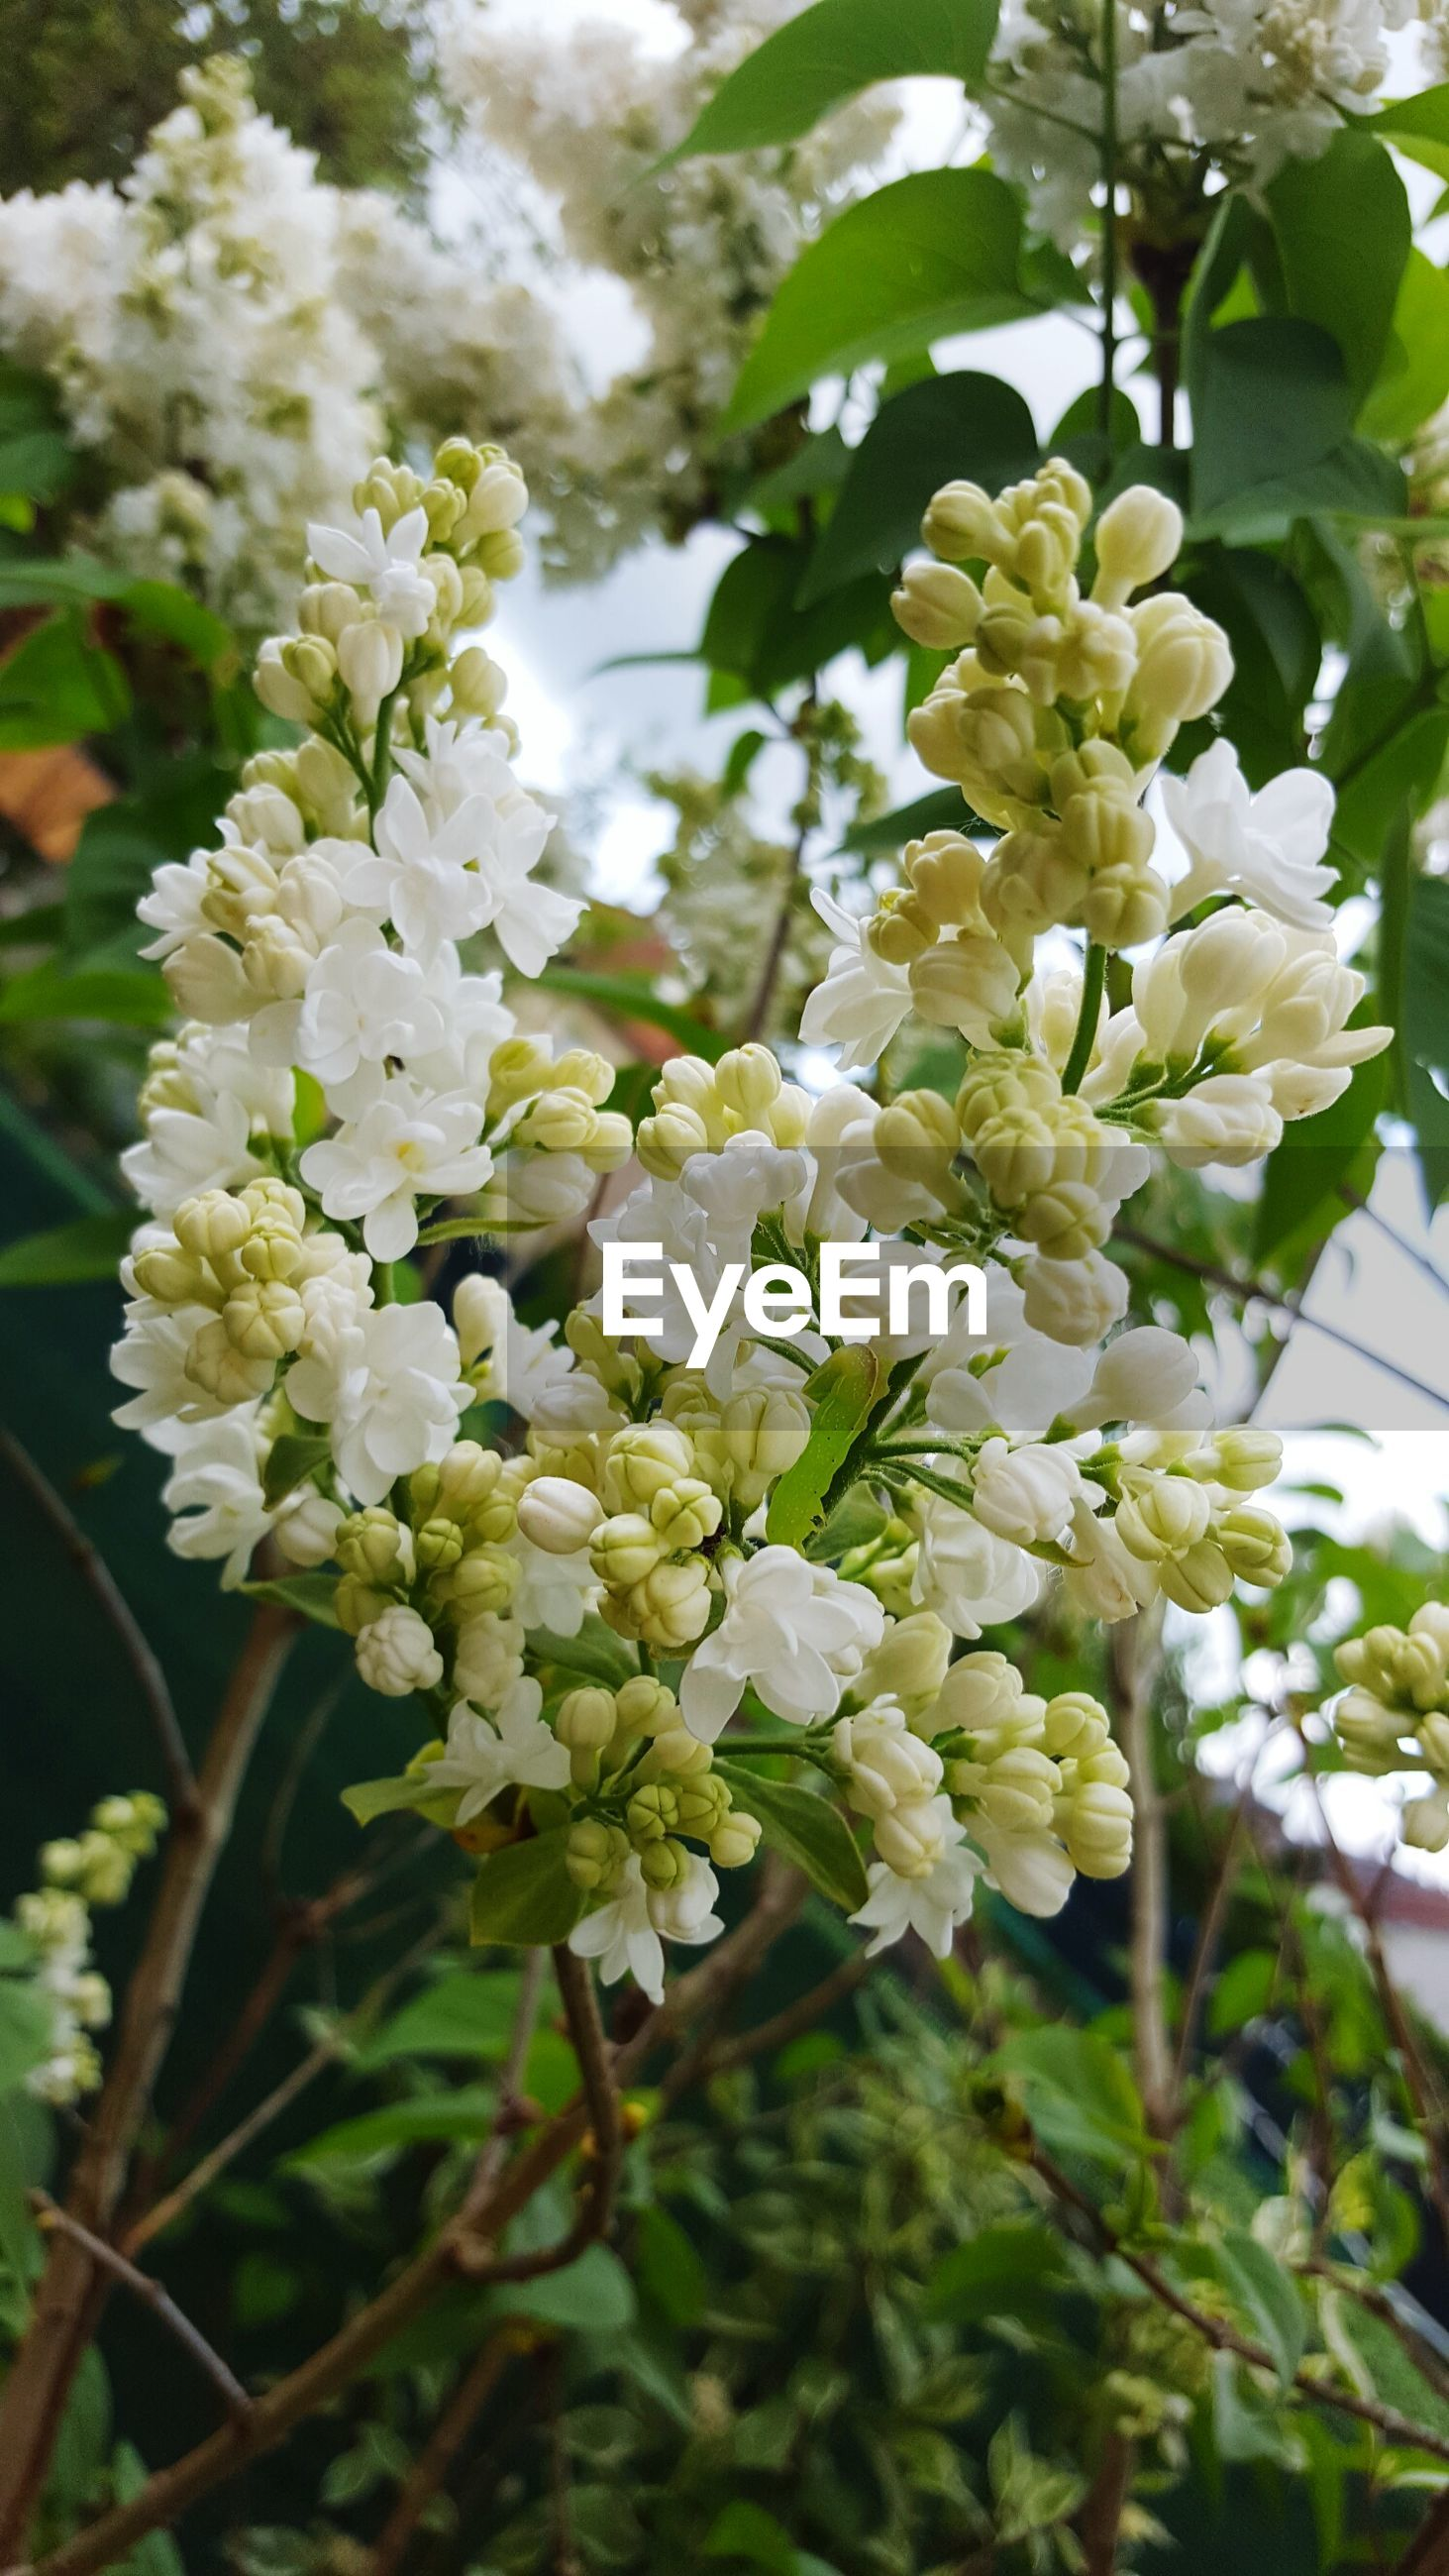 flower, freshness, growth, fragility, white color, petal, beauty in nature, nature, blooming, blossom, flower head, branch, tree, focus on foreground, in bloom, close-up, plant, springtime, leaf, day